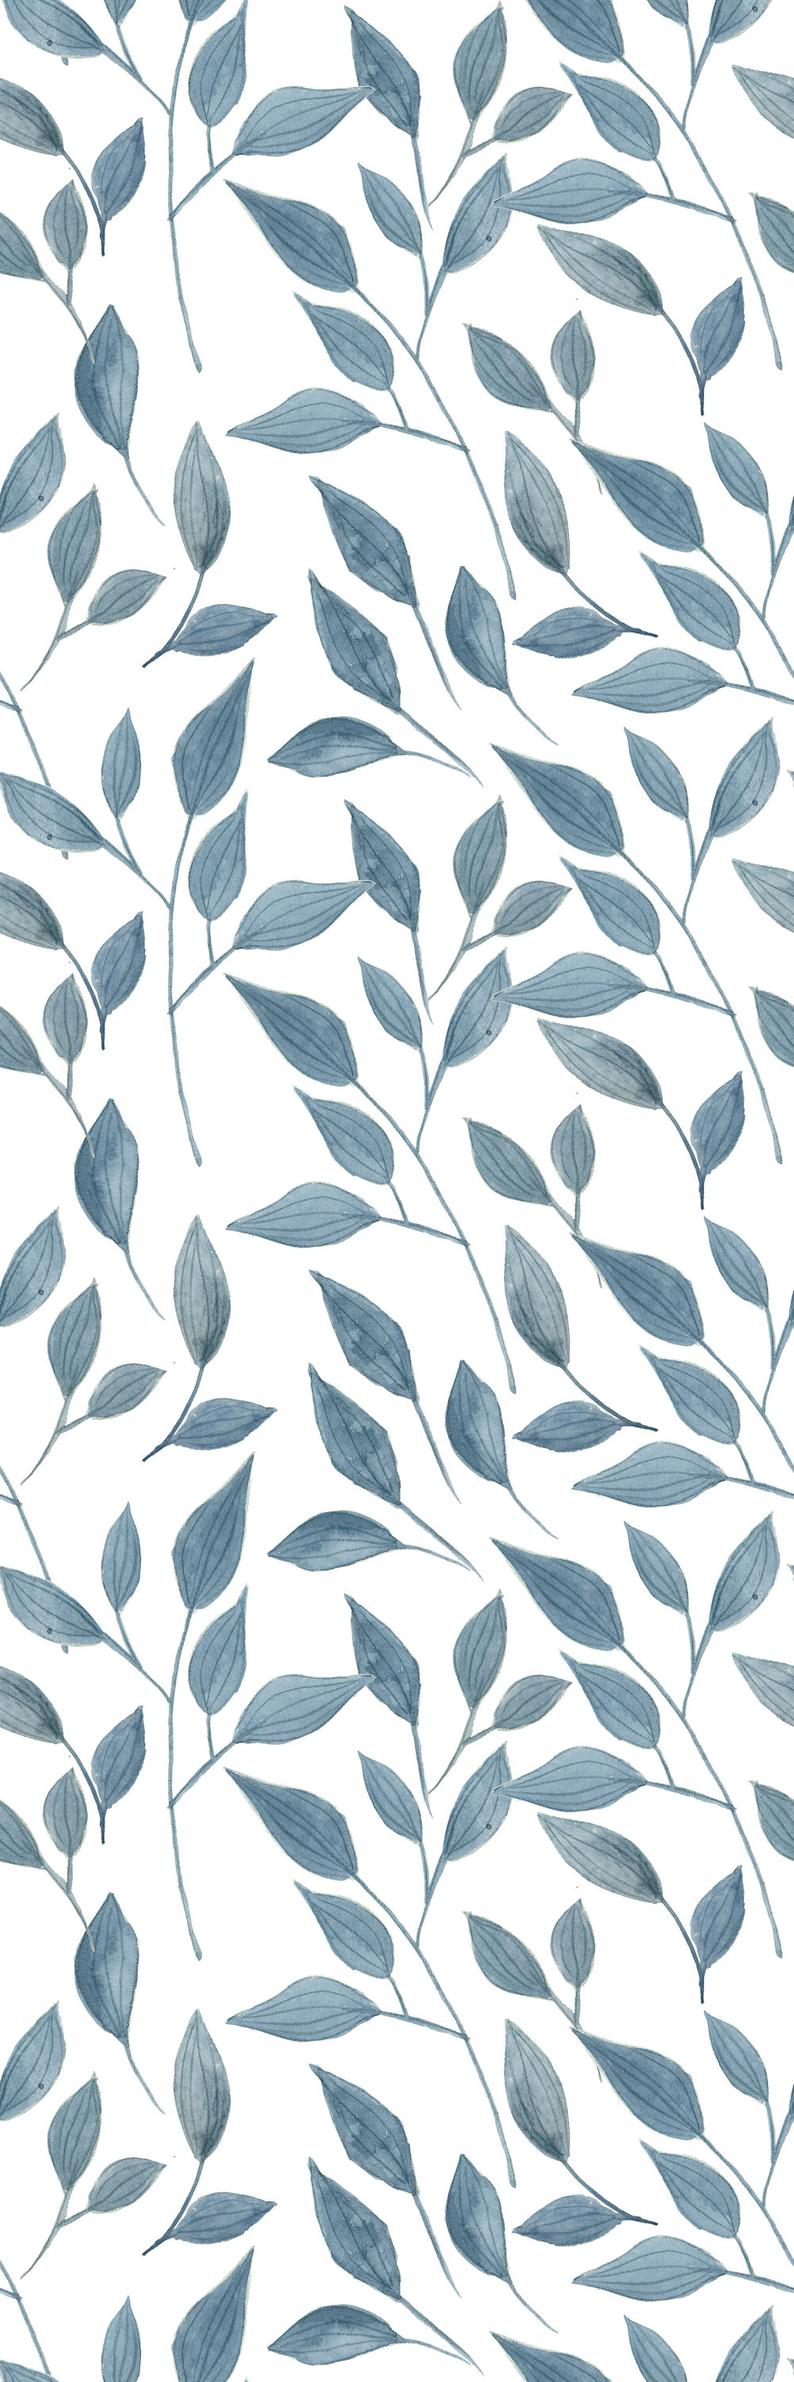 Removable Wallpaper Self Adhesive Wallpaper Handdrawn Blue Etsy In 2021 Iphone Background Wallpaper Cute Patterns Wallpaper Aesthetic Iphone Wallpaper